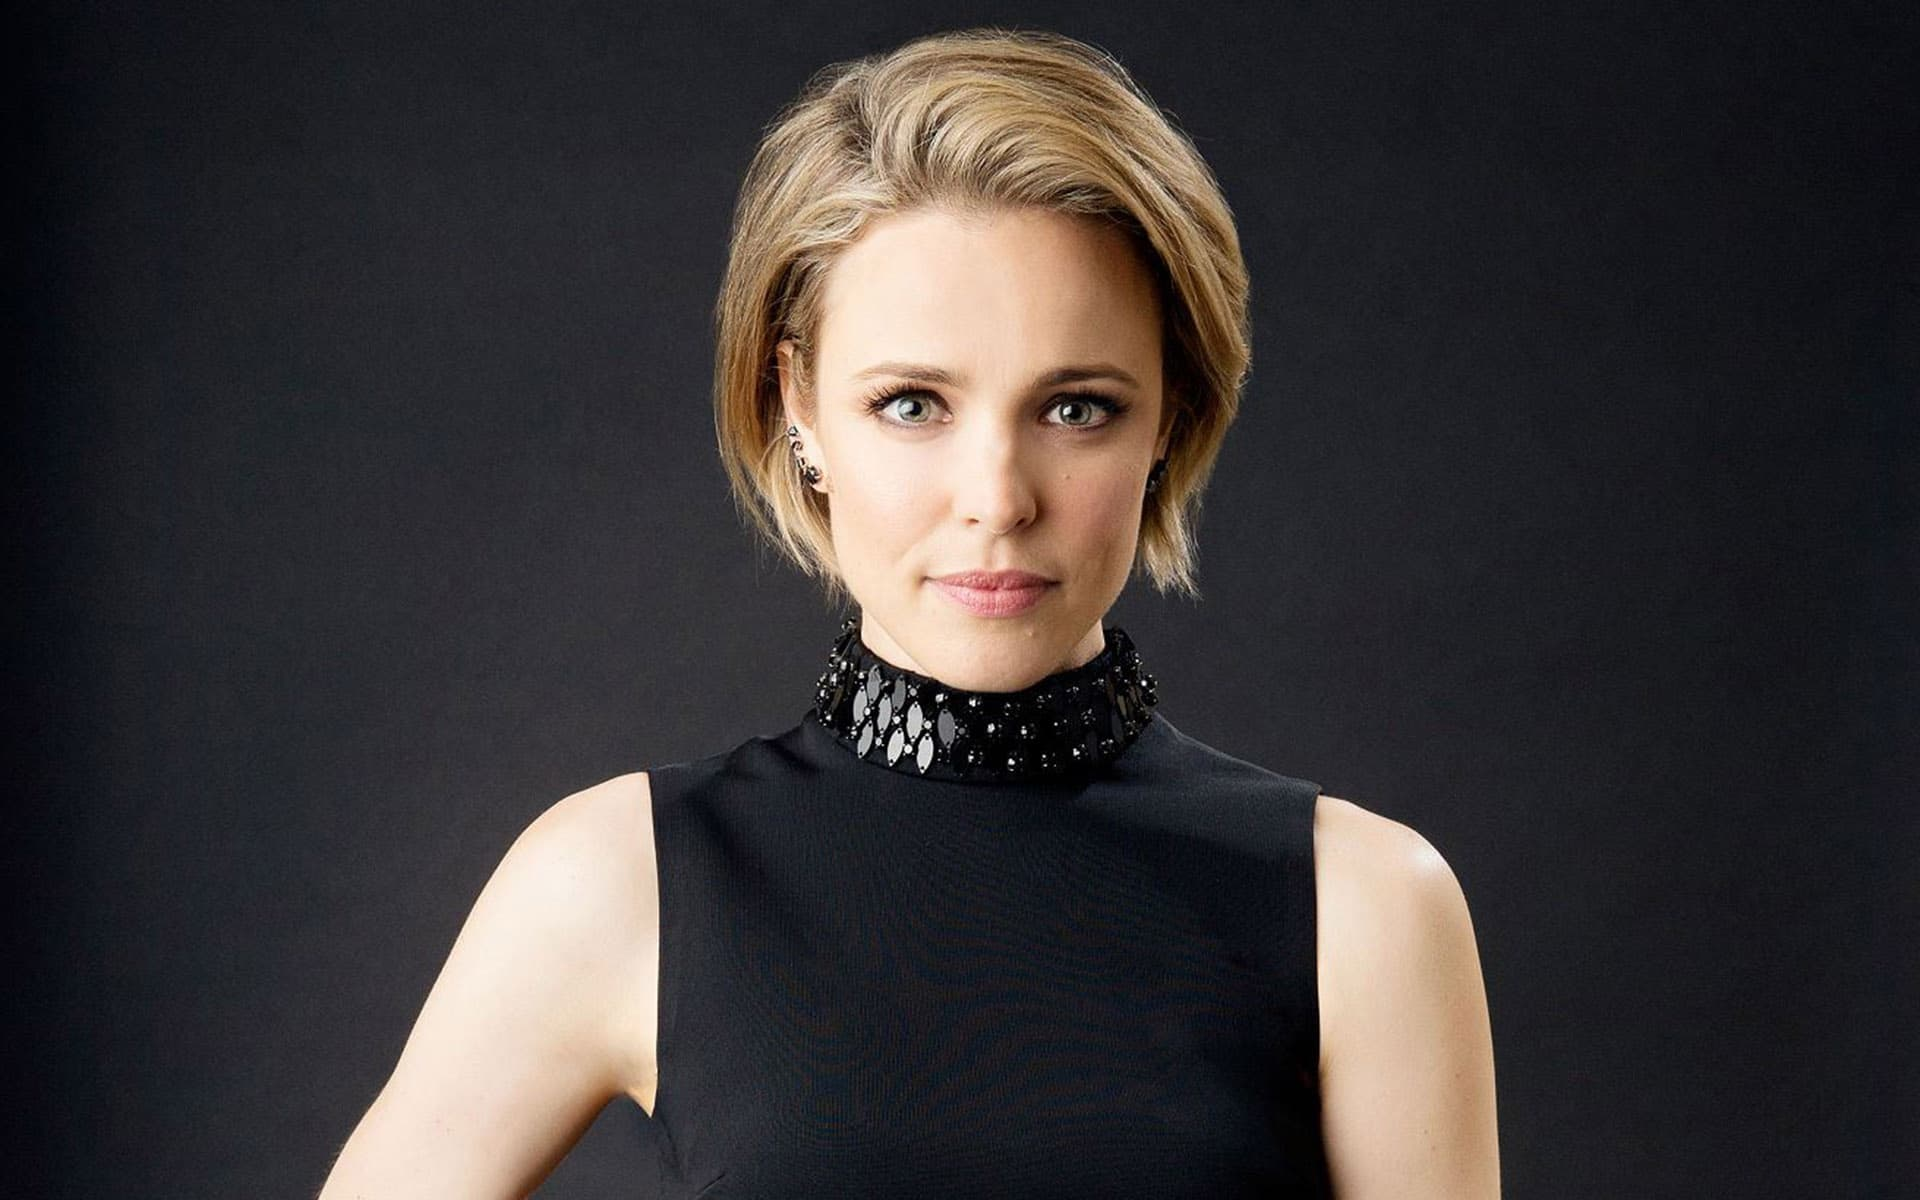 Best Cars And Bikes Wallpapers Rachel Mcadams Wallpapers Hd Images Photos High Quality